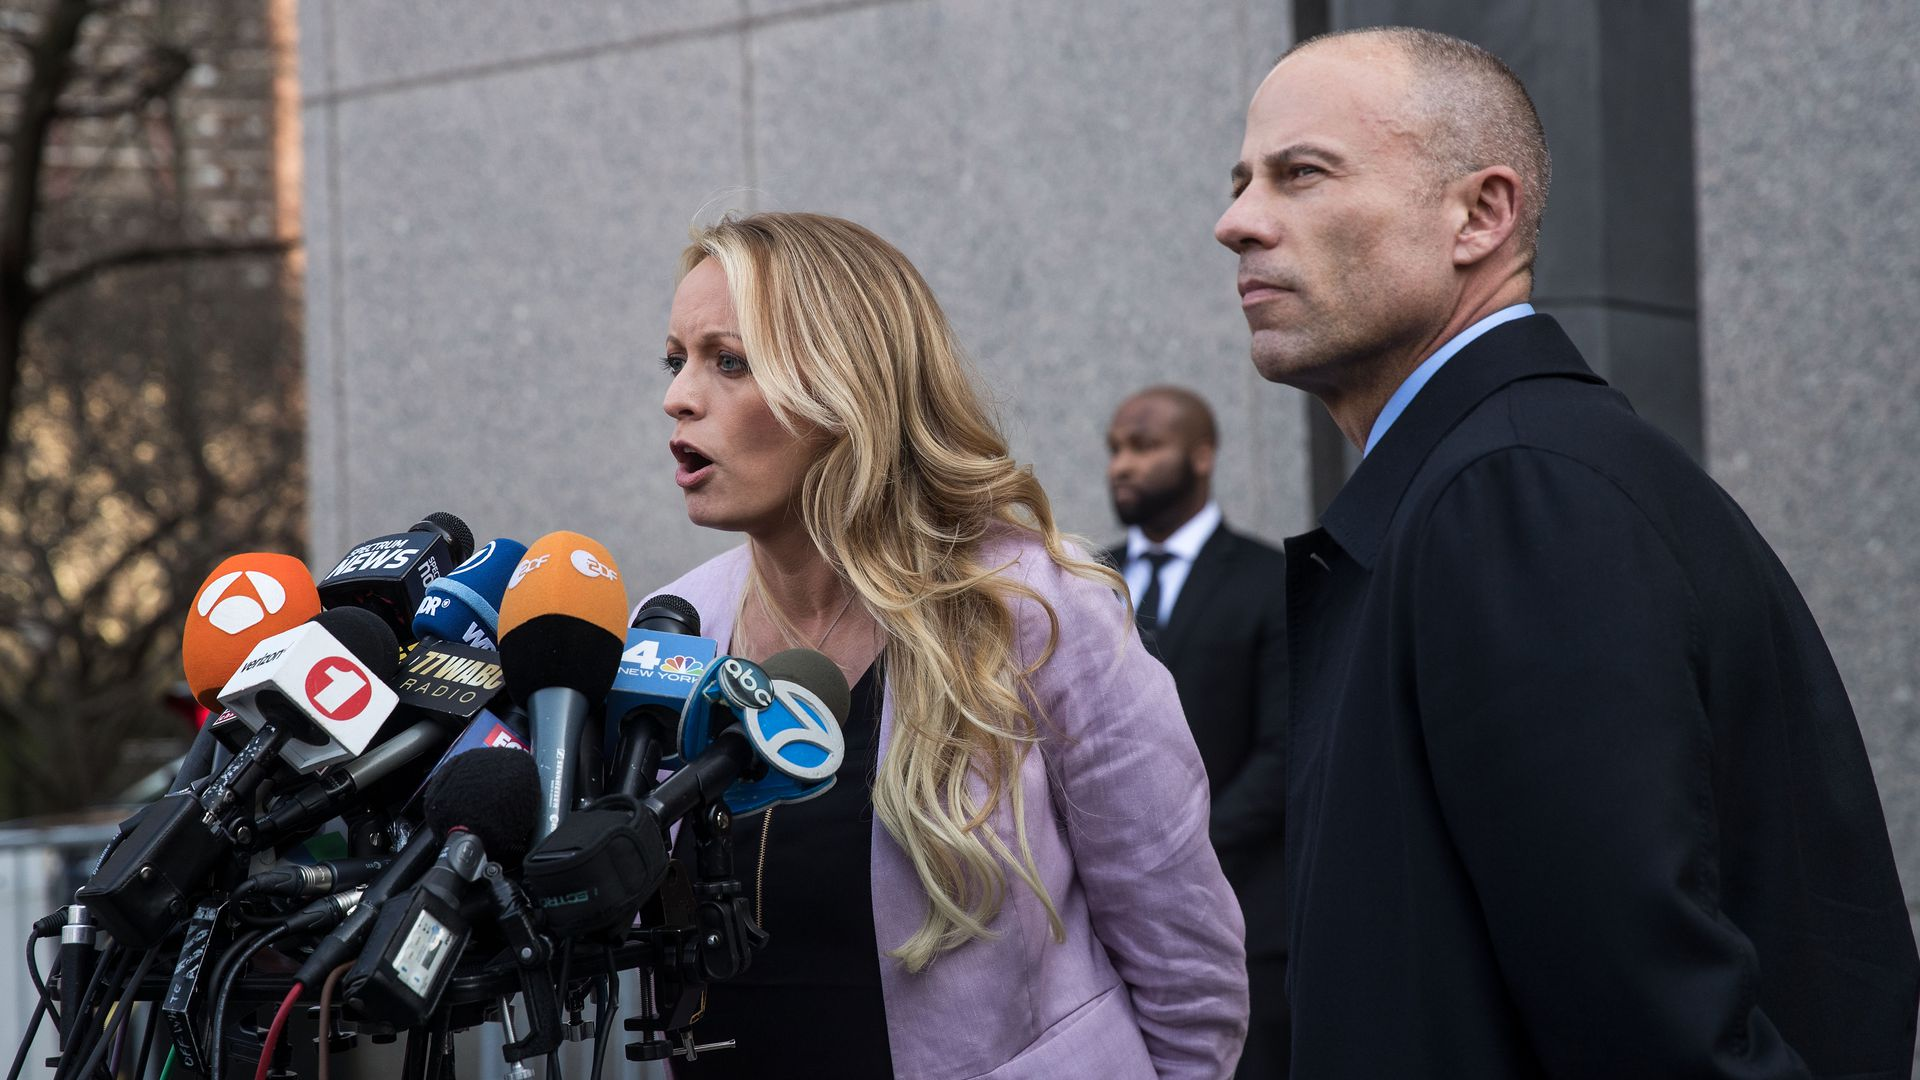 Adult film actress Stormy Daniels (Stephanie Clifford) and attorney Michael Avenatti. Photo: Drew Angerer/Getty Images